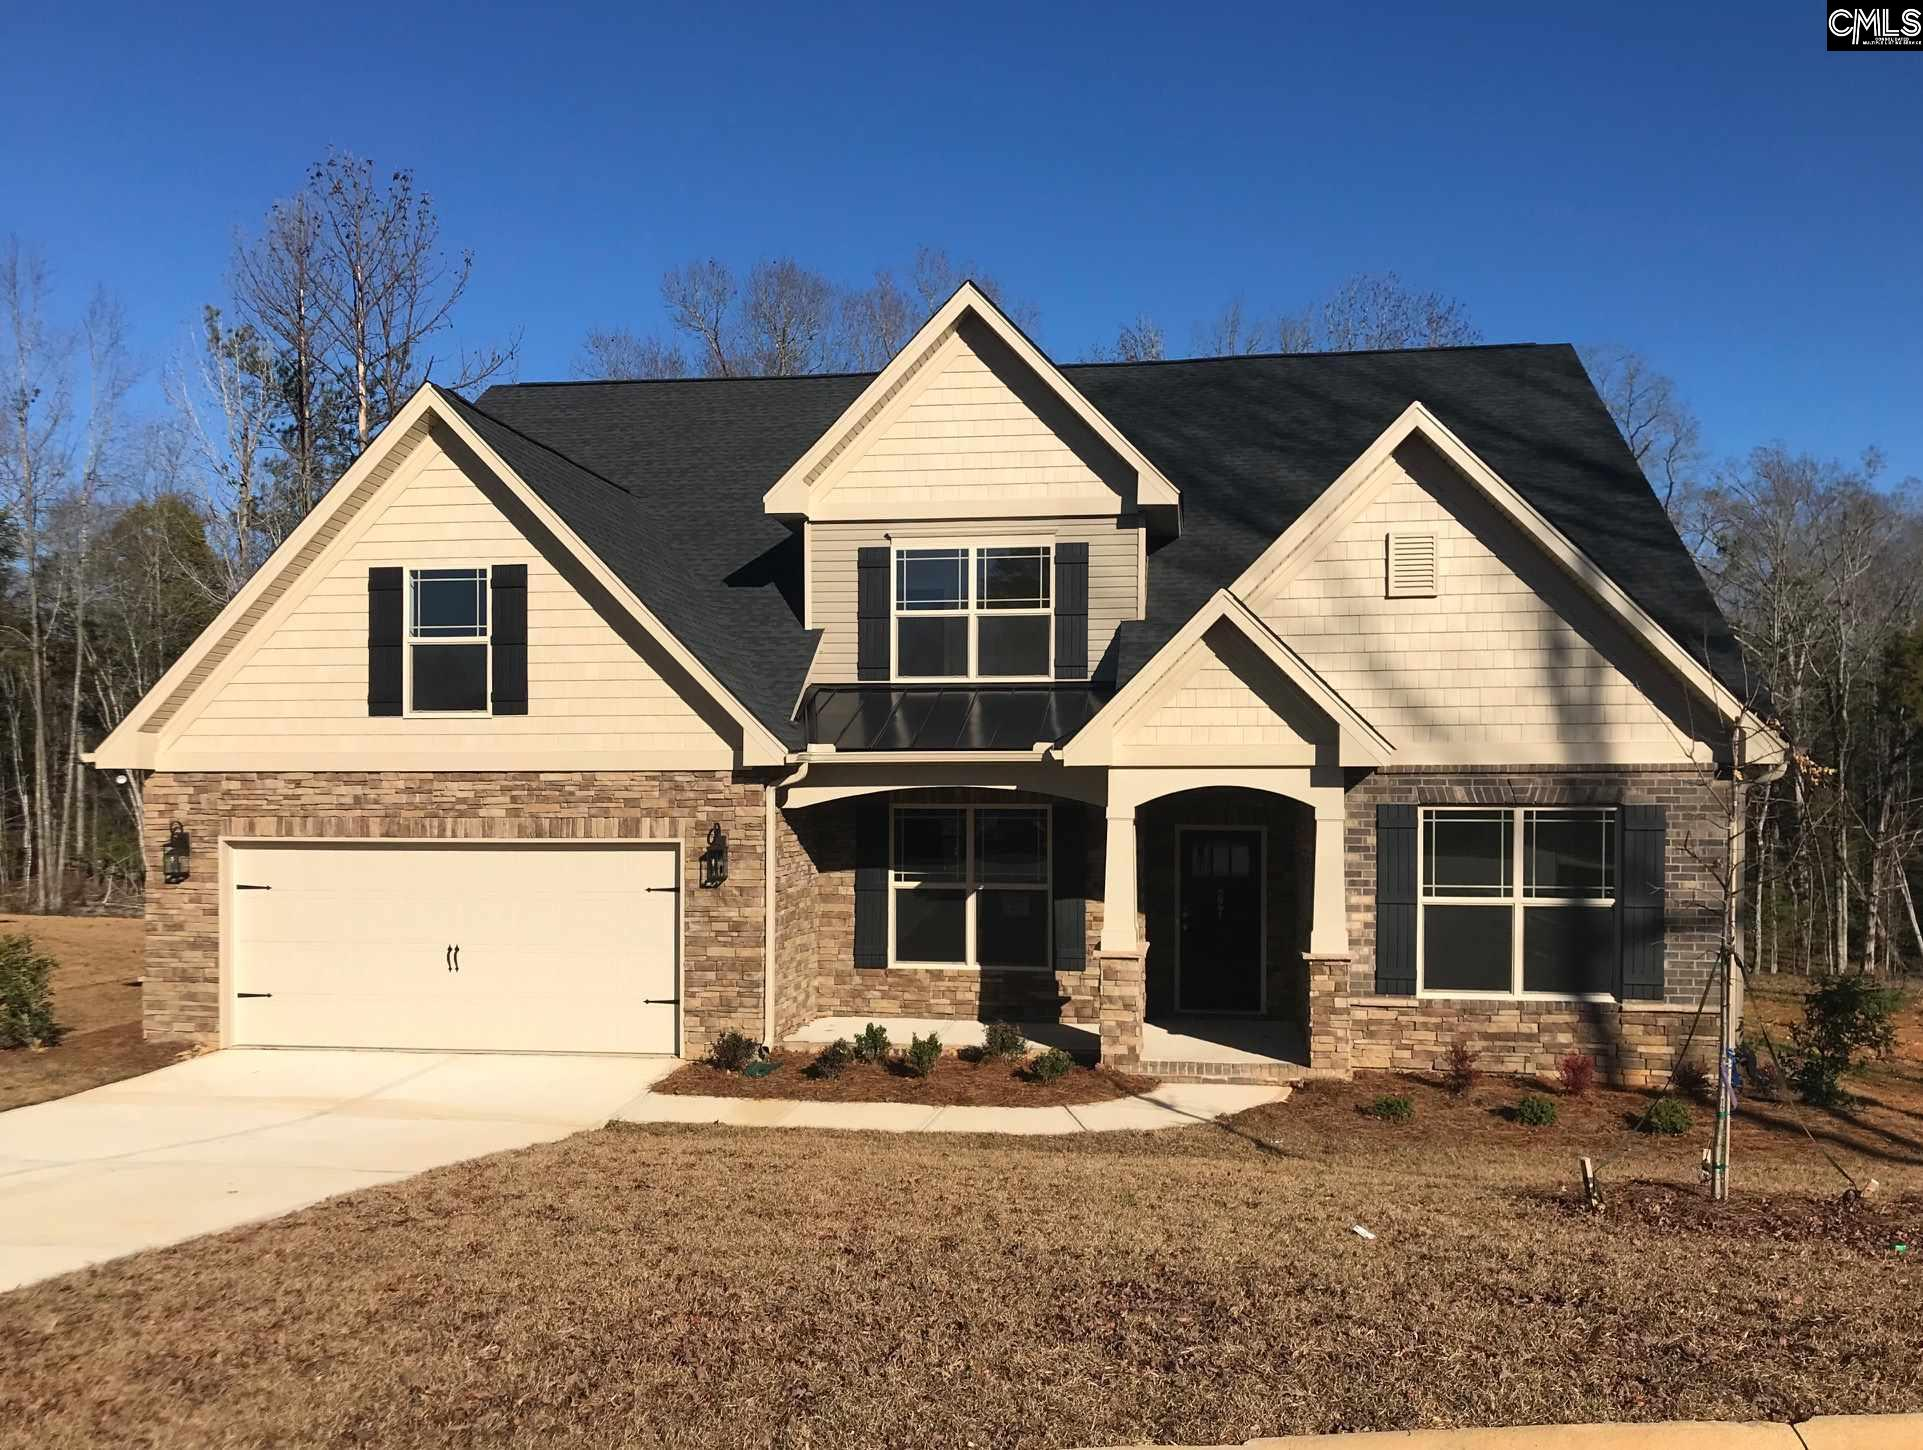 227 Chapin Brook Chapin, SC 29036